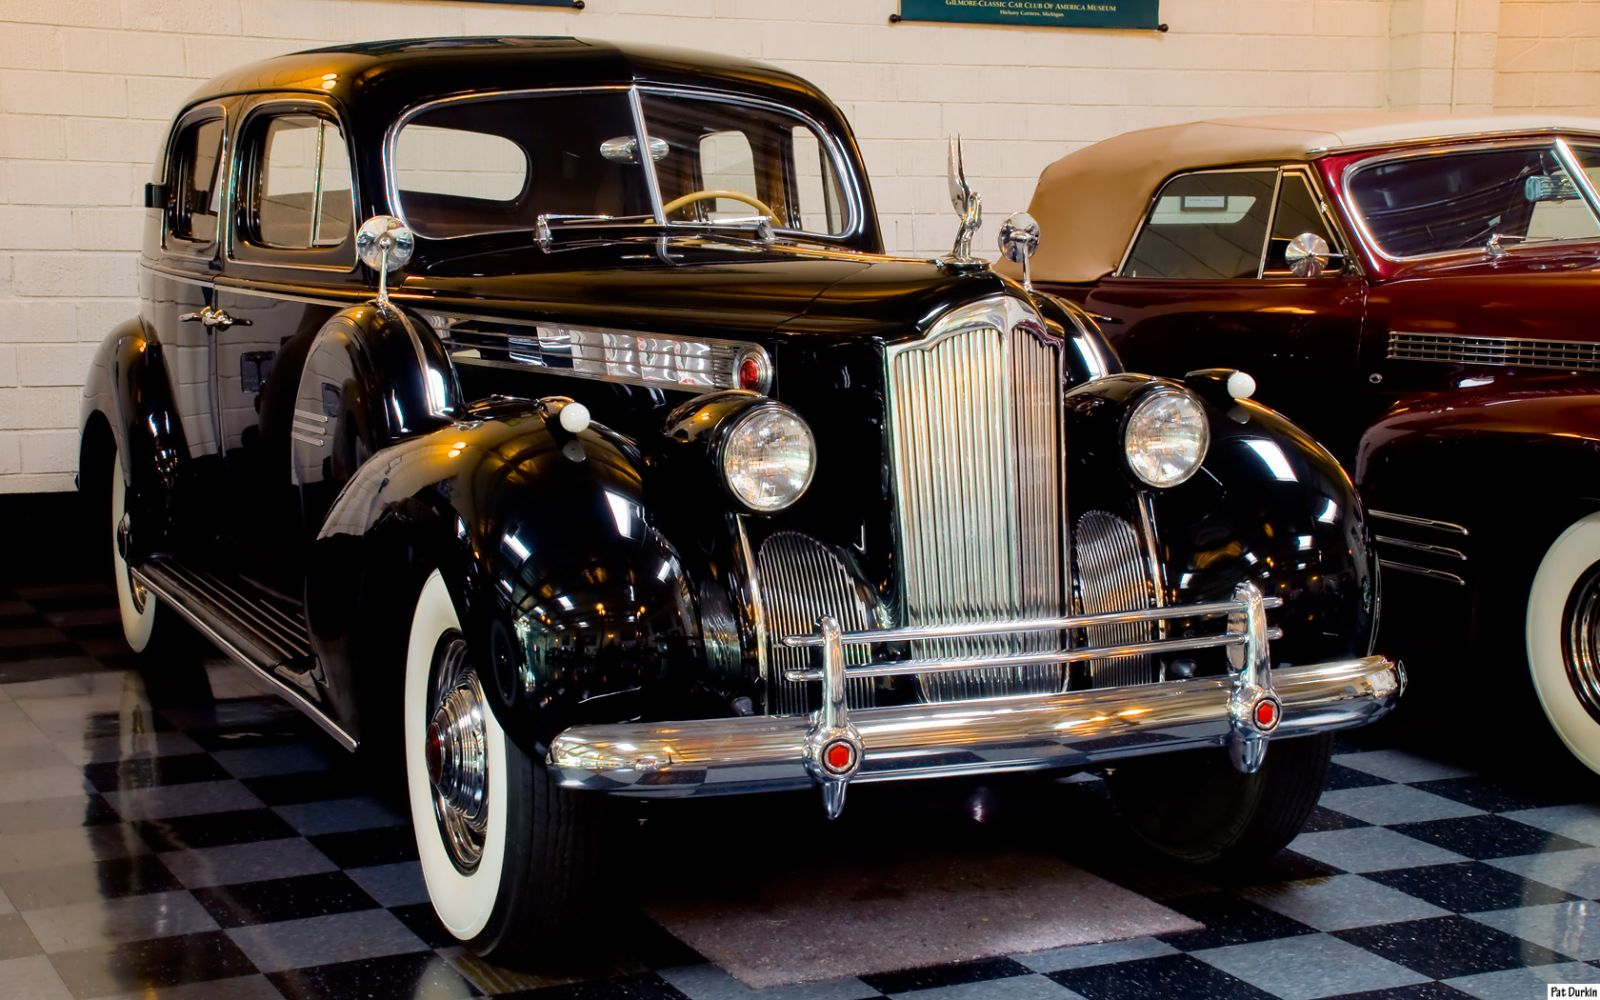 1940 Packard 1806 Club Sedan - black - fvr